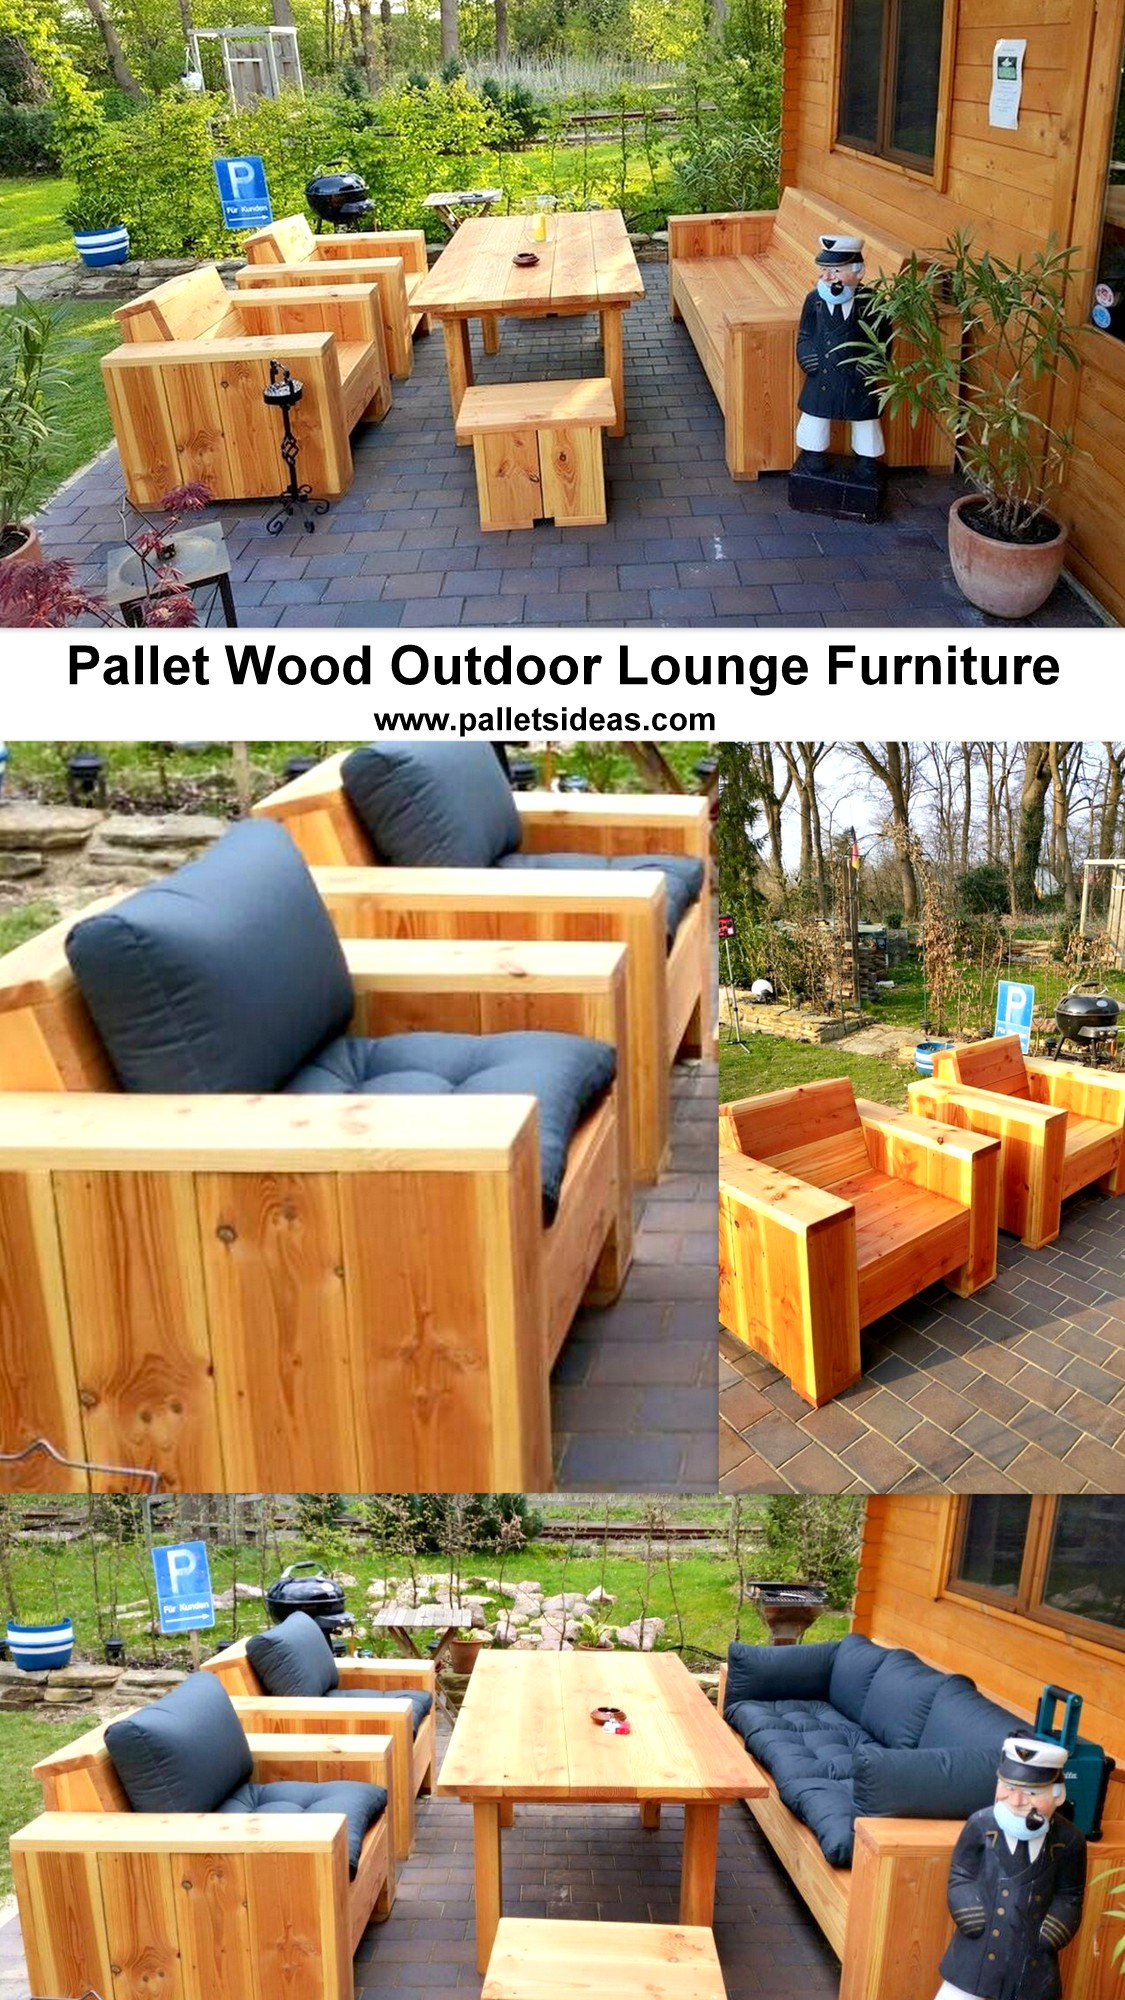 Pallet Wood Outdoor Lounge Furniture Pallet Ideas Recycled Upcycled Pallets Furniture Projects